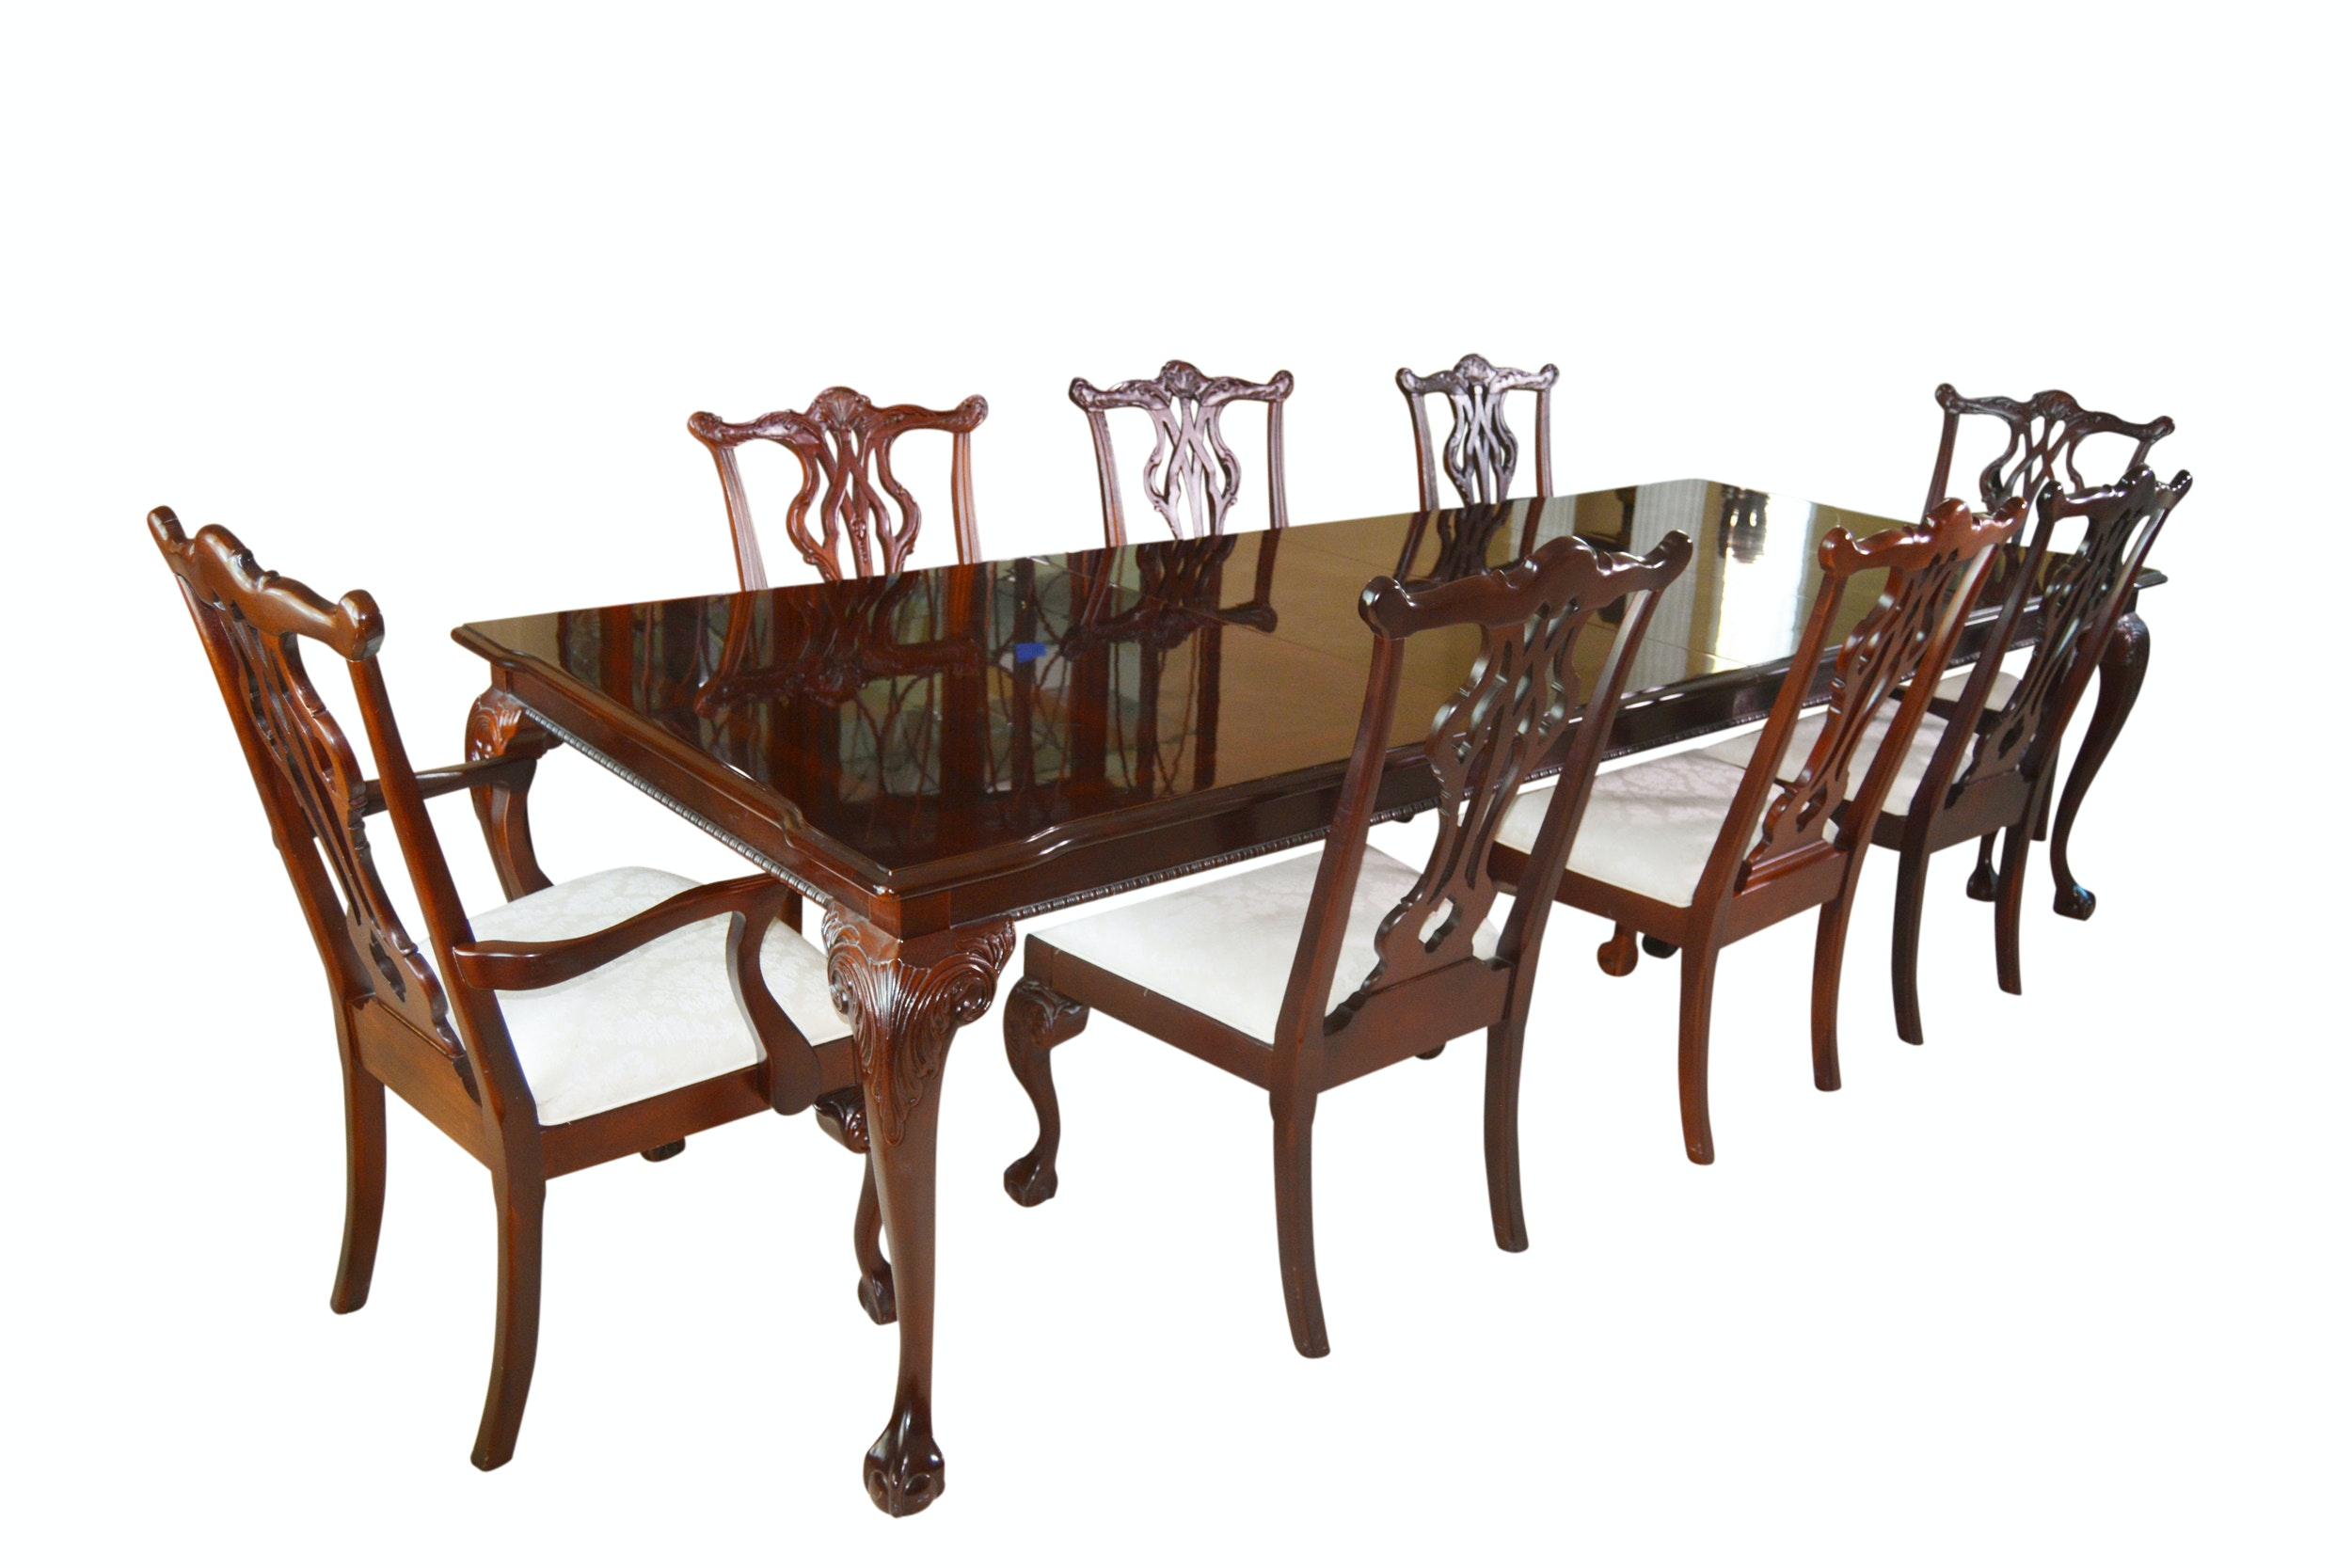 Thomasville Chippendale Style Dining Room Table and Chairs